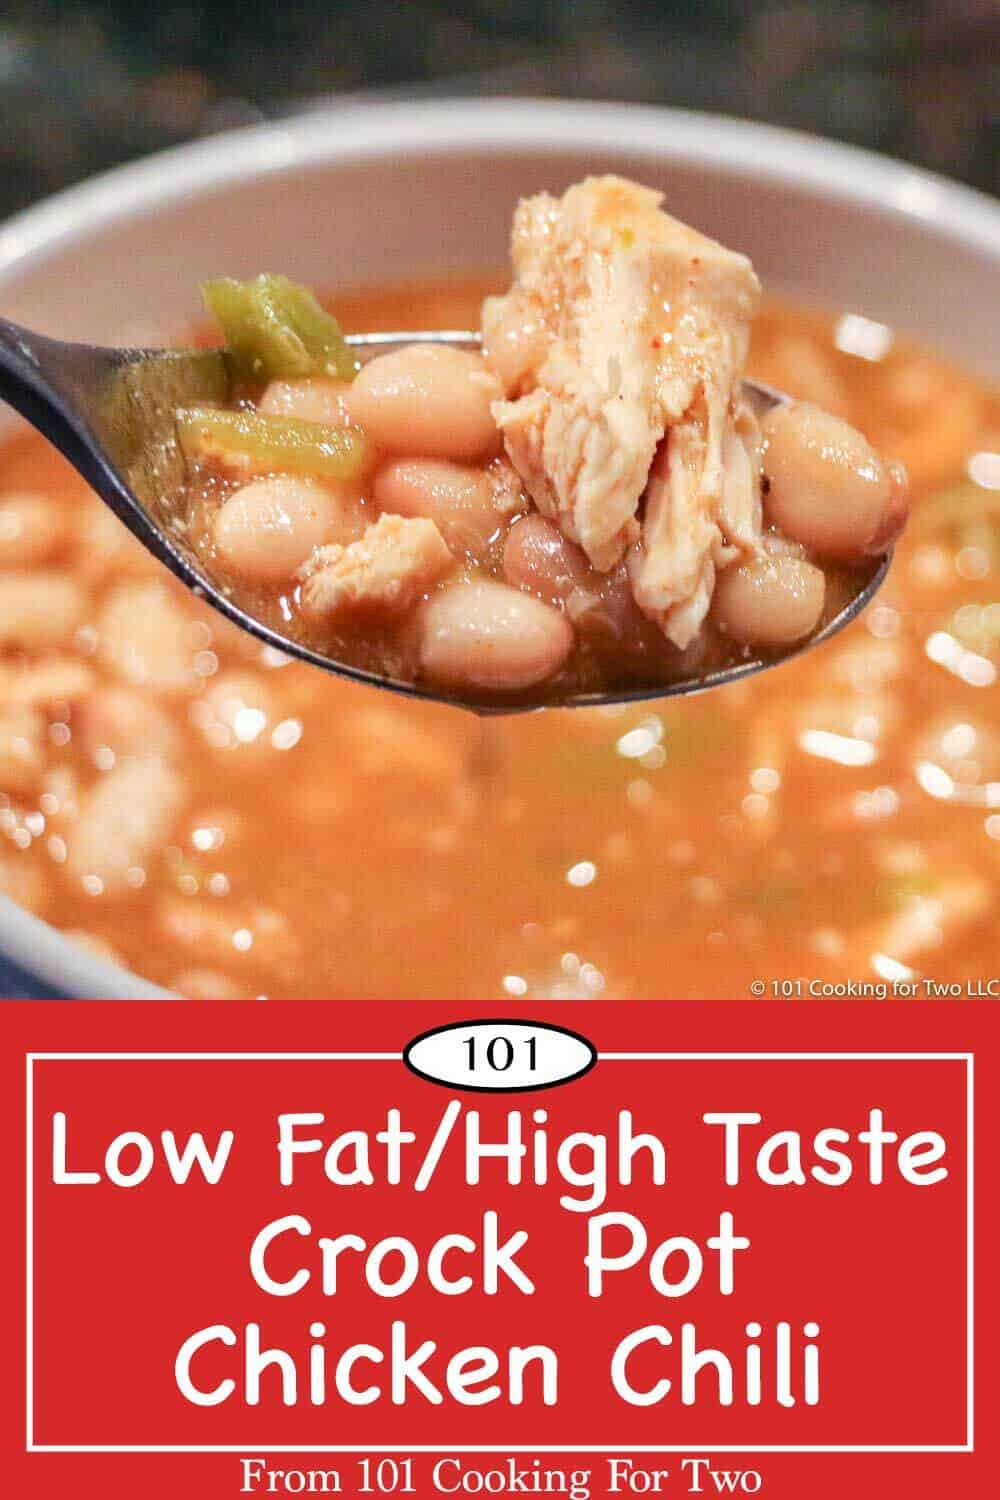 Great tasting healthy crock pot white chicken chili with only about 250 calories and 2 gram of fat per serving. Just follow these easy step by step photo instructions. No pre-cooking the chicken here. #ChickenChili #CrockPotChickenChili #HealthyChickenChili #LowFatChickenChili